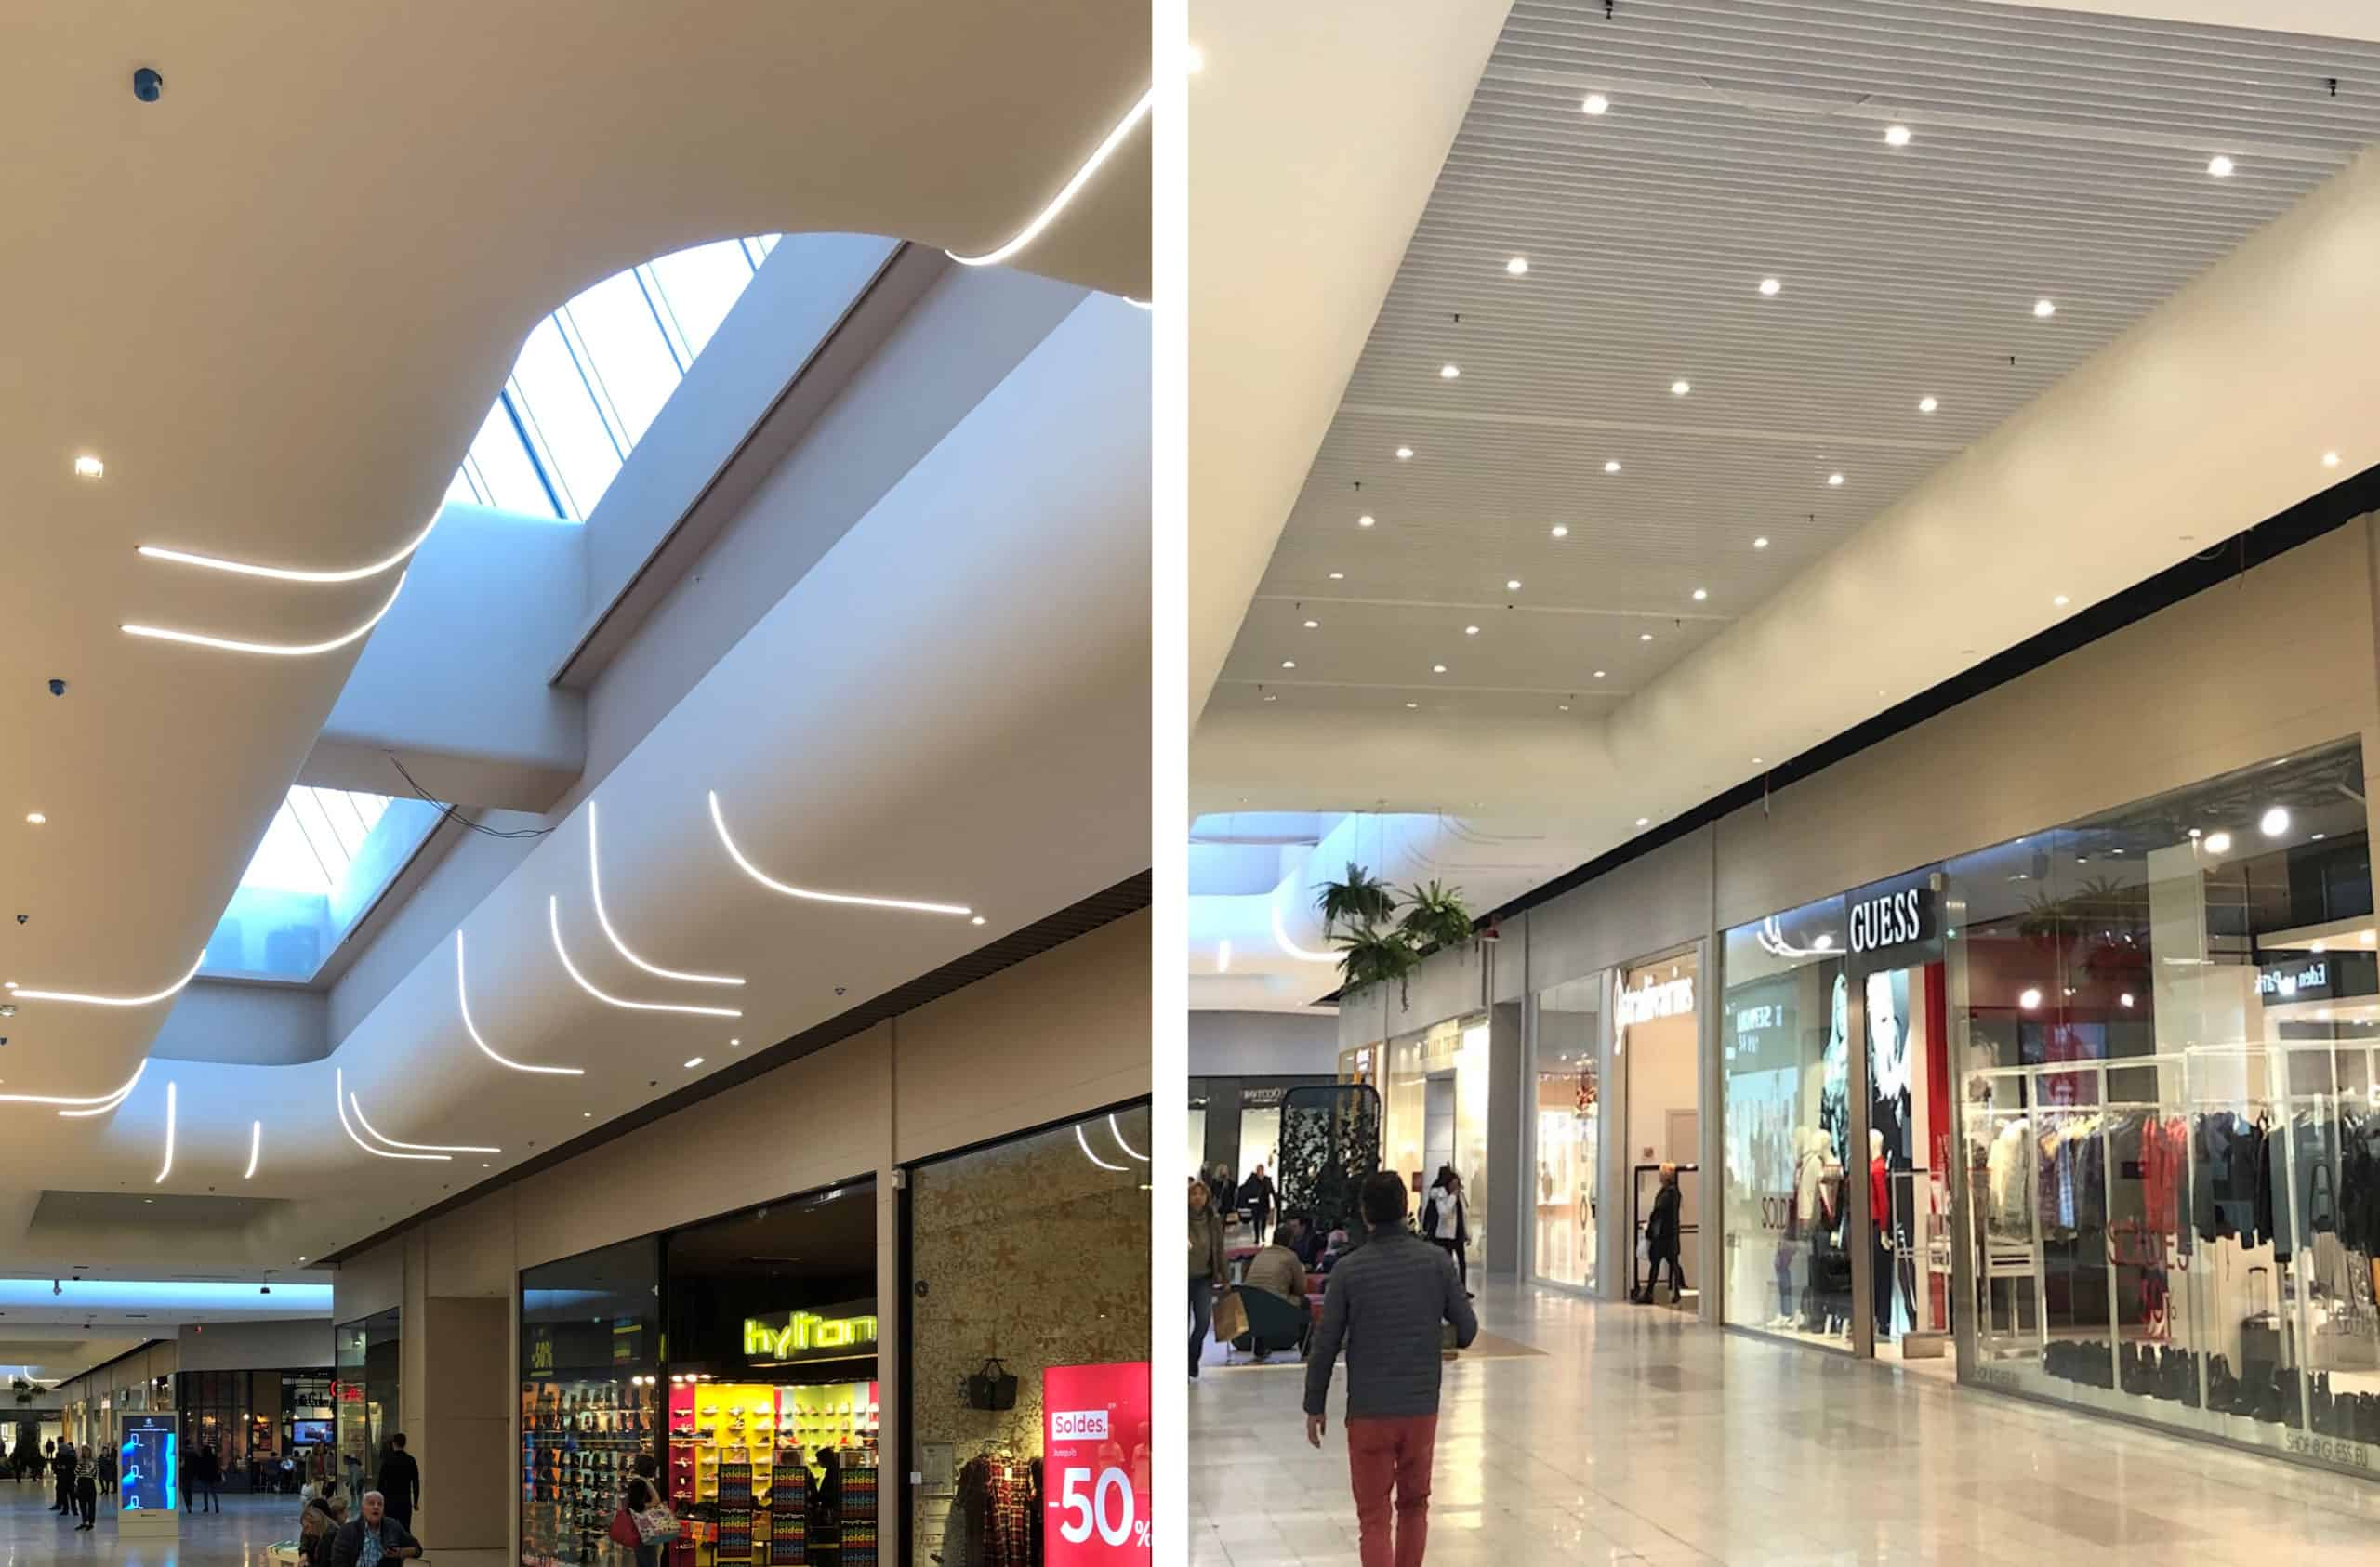 Project Galerie du Centre Commercial de Blagnac, France